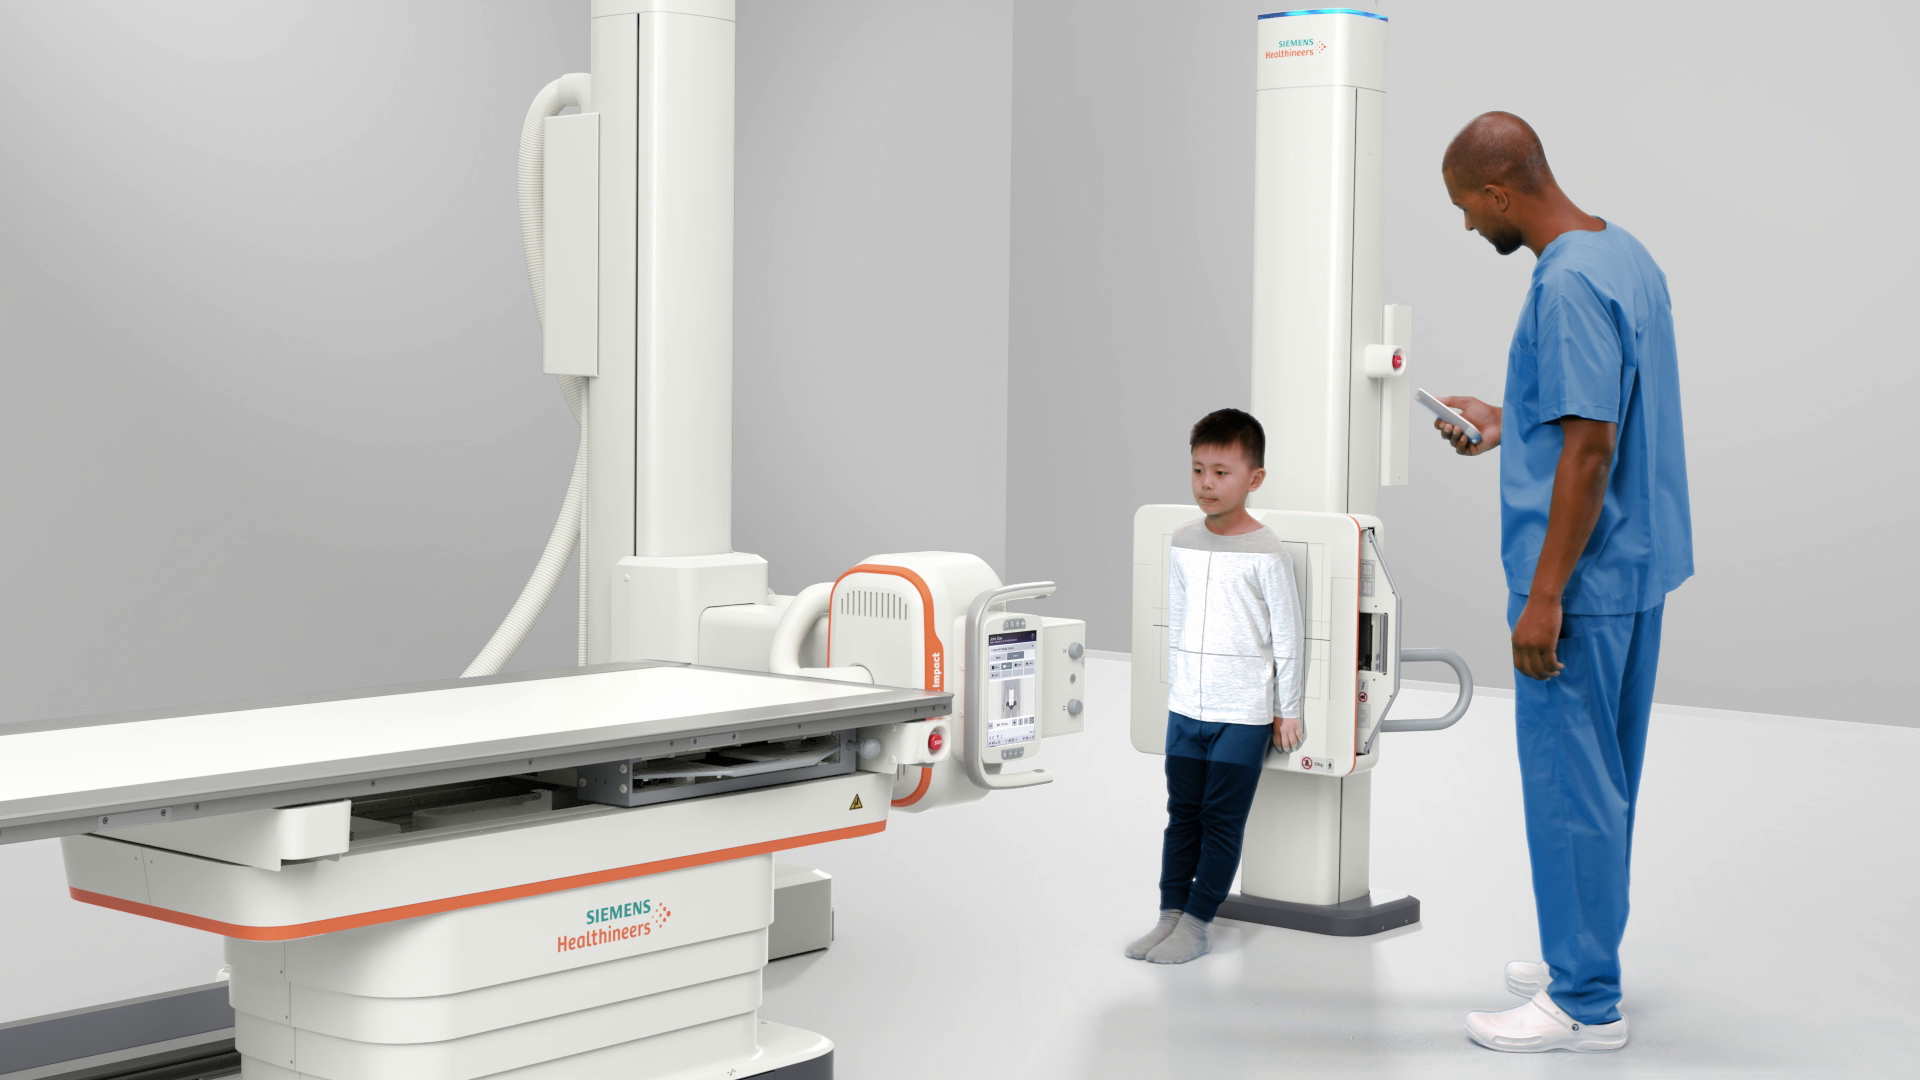 MULTIX Impact is a high-end, floor-mounted radiography system that comes at an economical price and improves access to care.